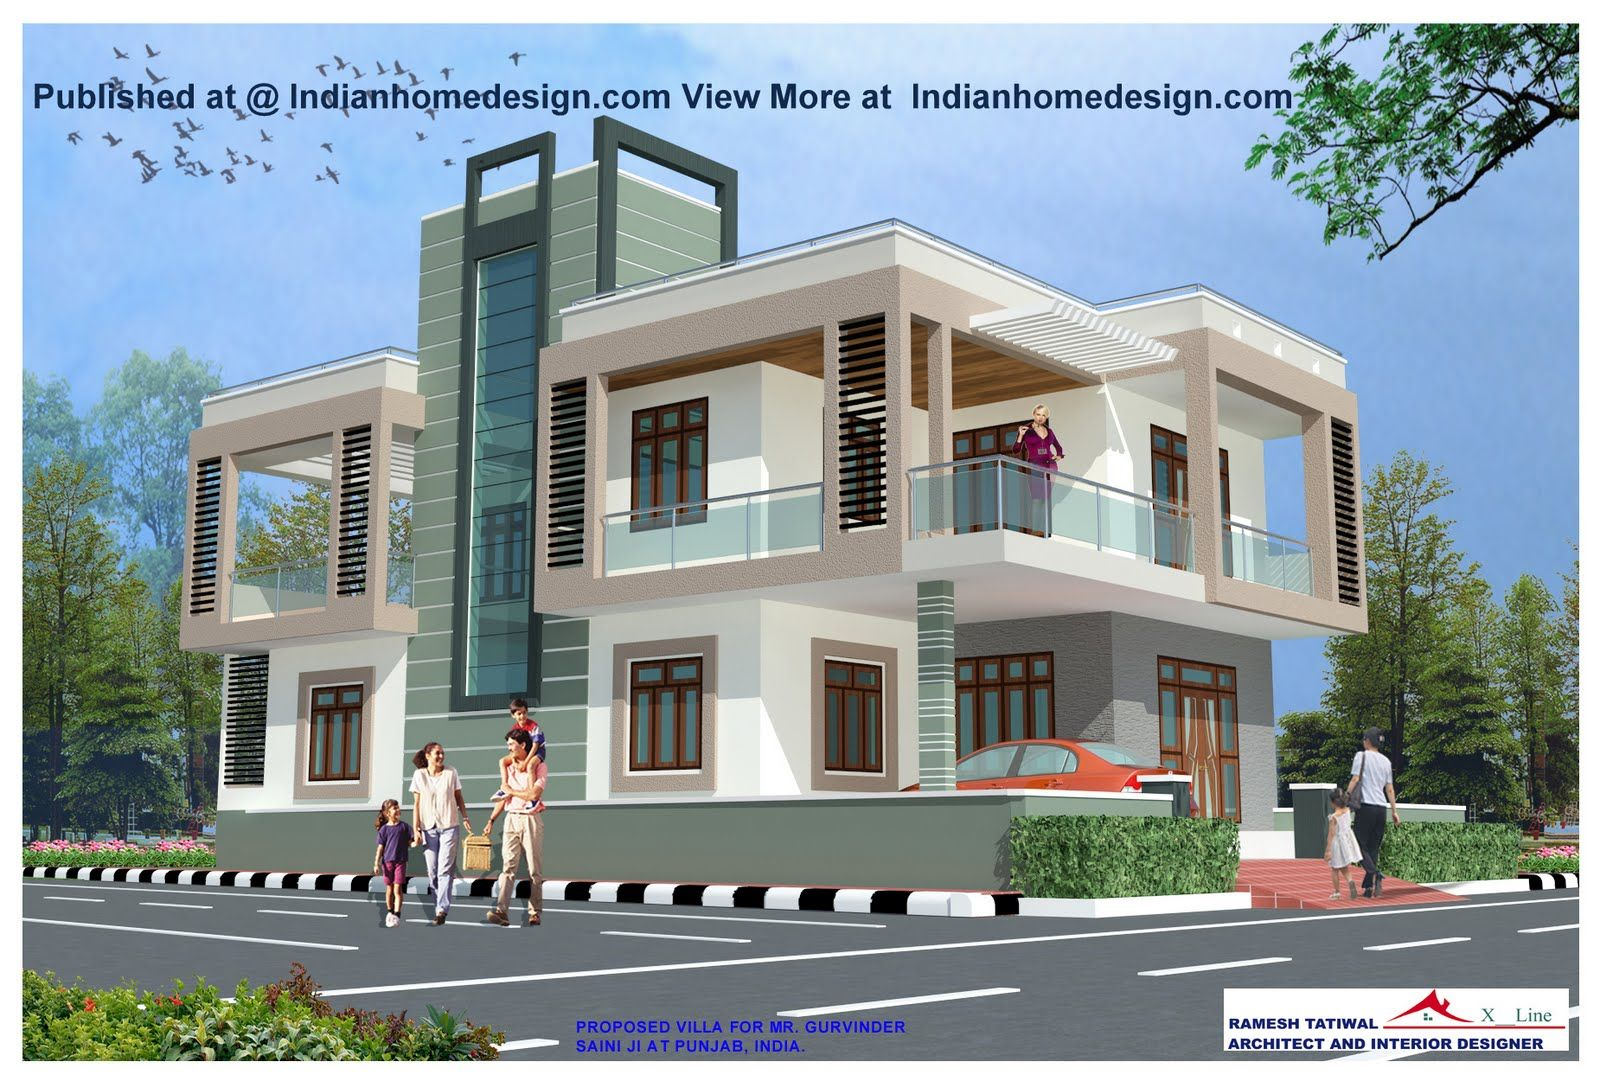 House design outside - Modern Exteriors Villas Design Rajasthan Style Home Exterior Home Design Villas Design